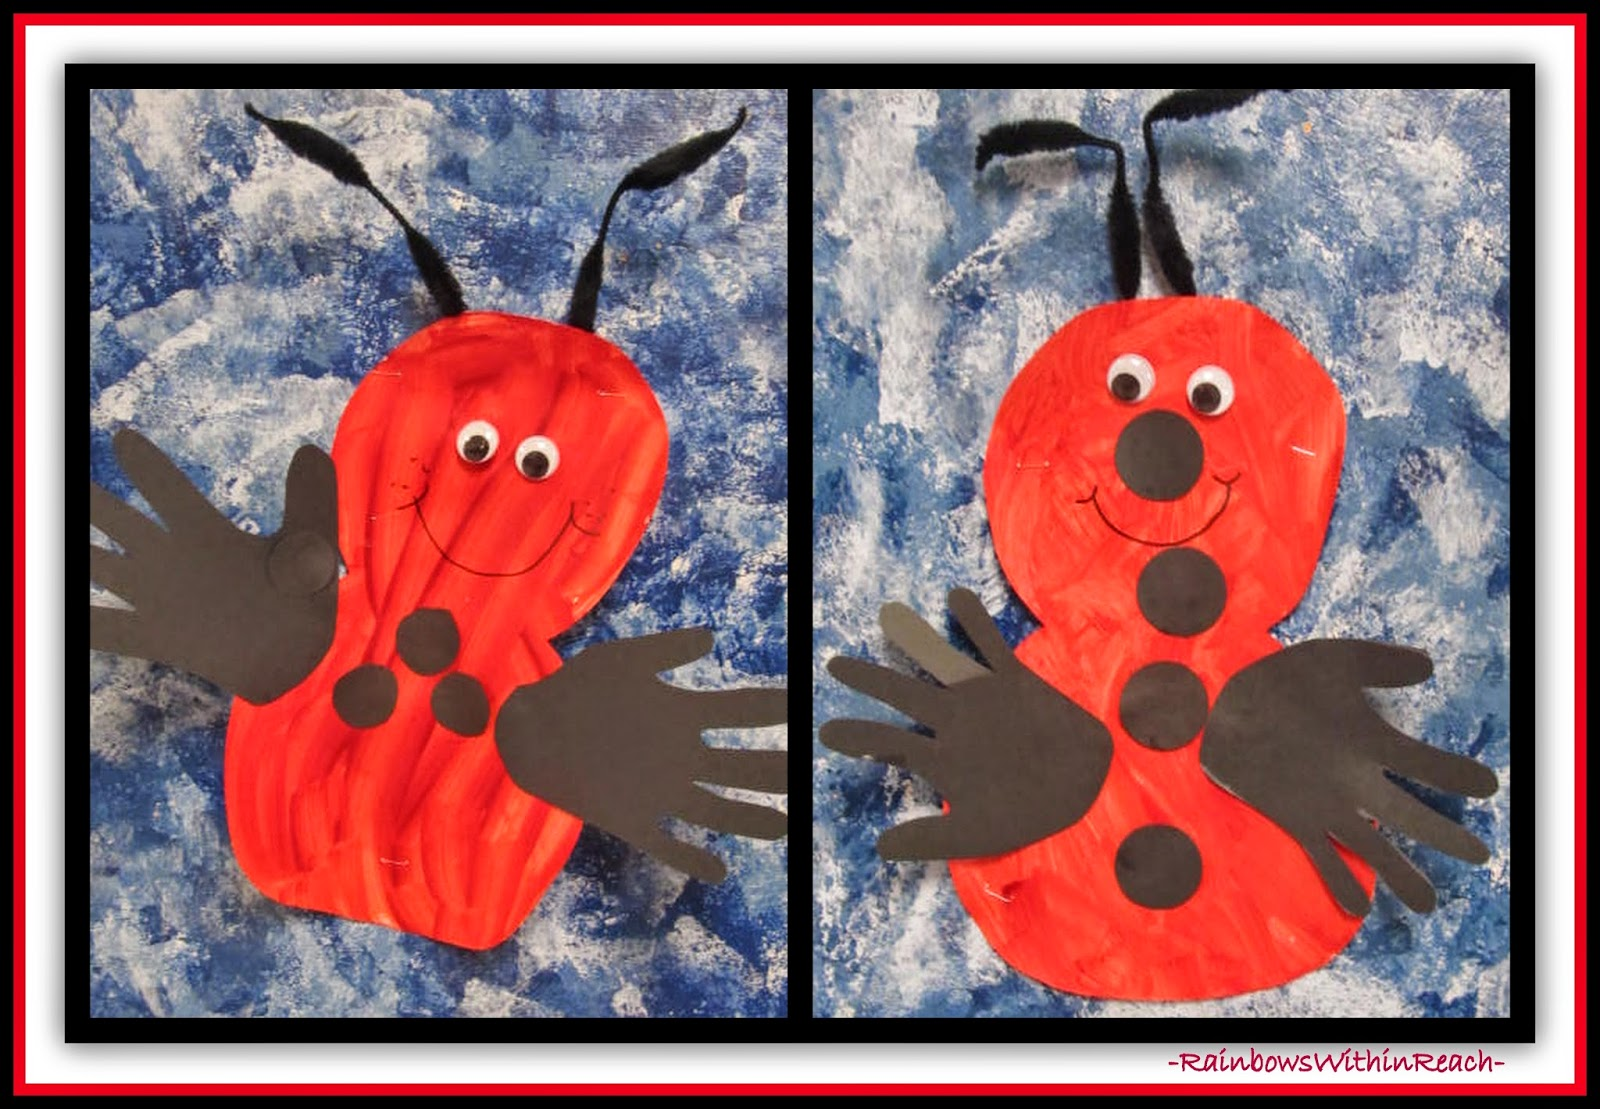 Lady Bug with Traced Hand Detail at RainbowsWithinReach